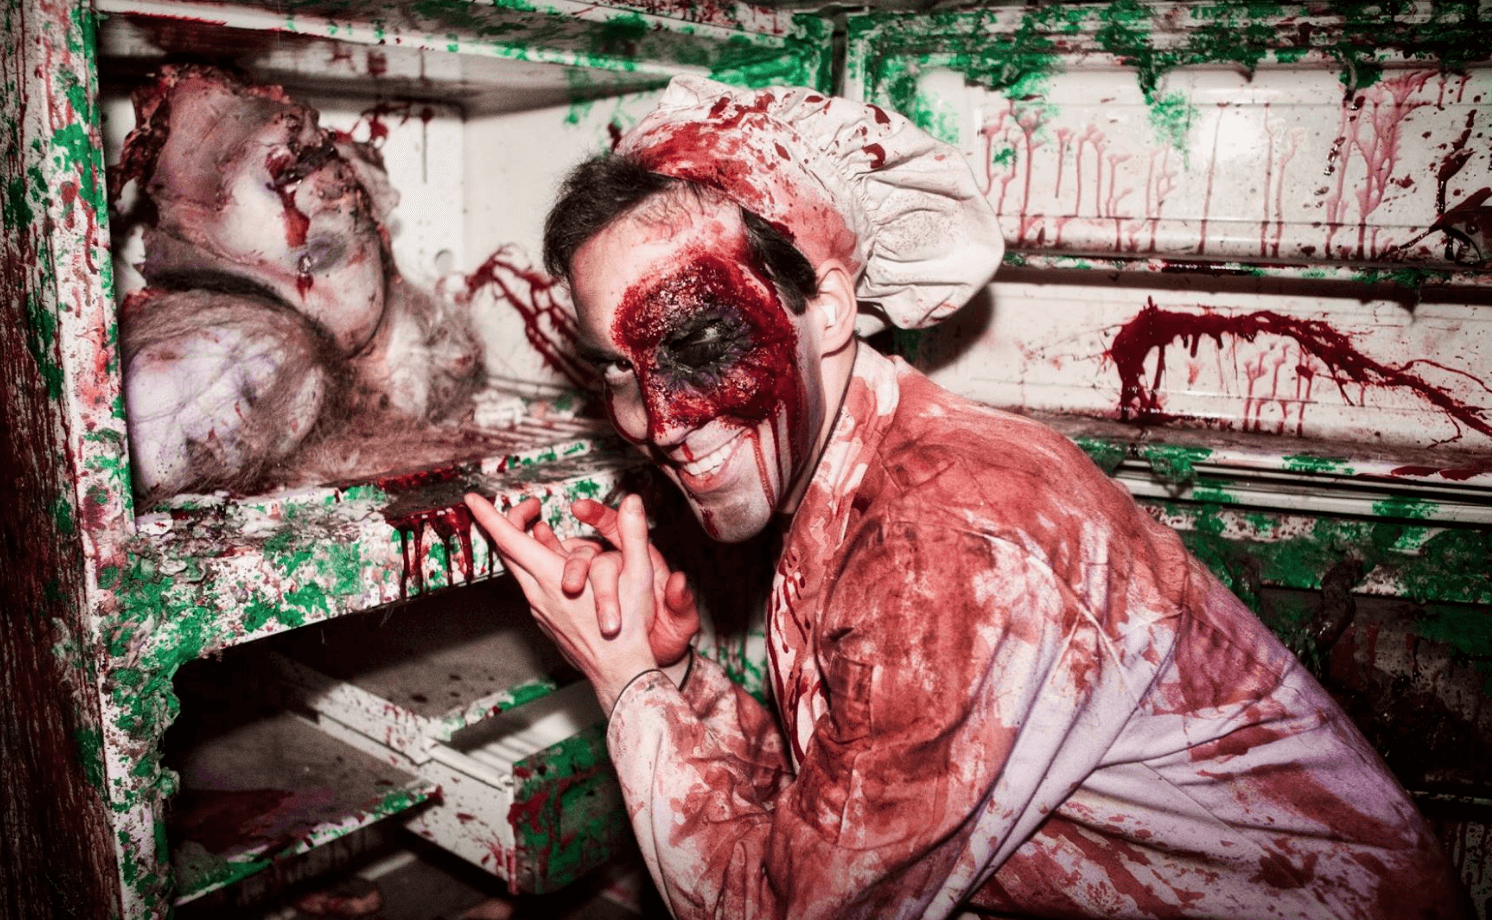 Events Up Coming NYC Halloween Blood Manor Refrigerator